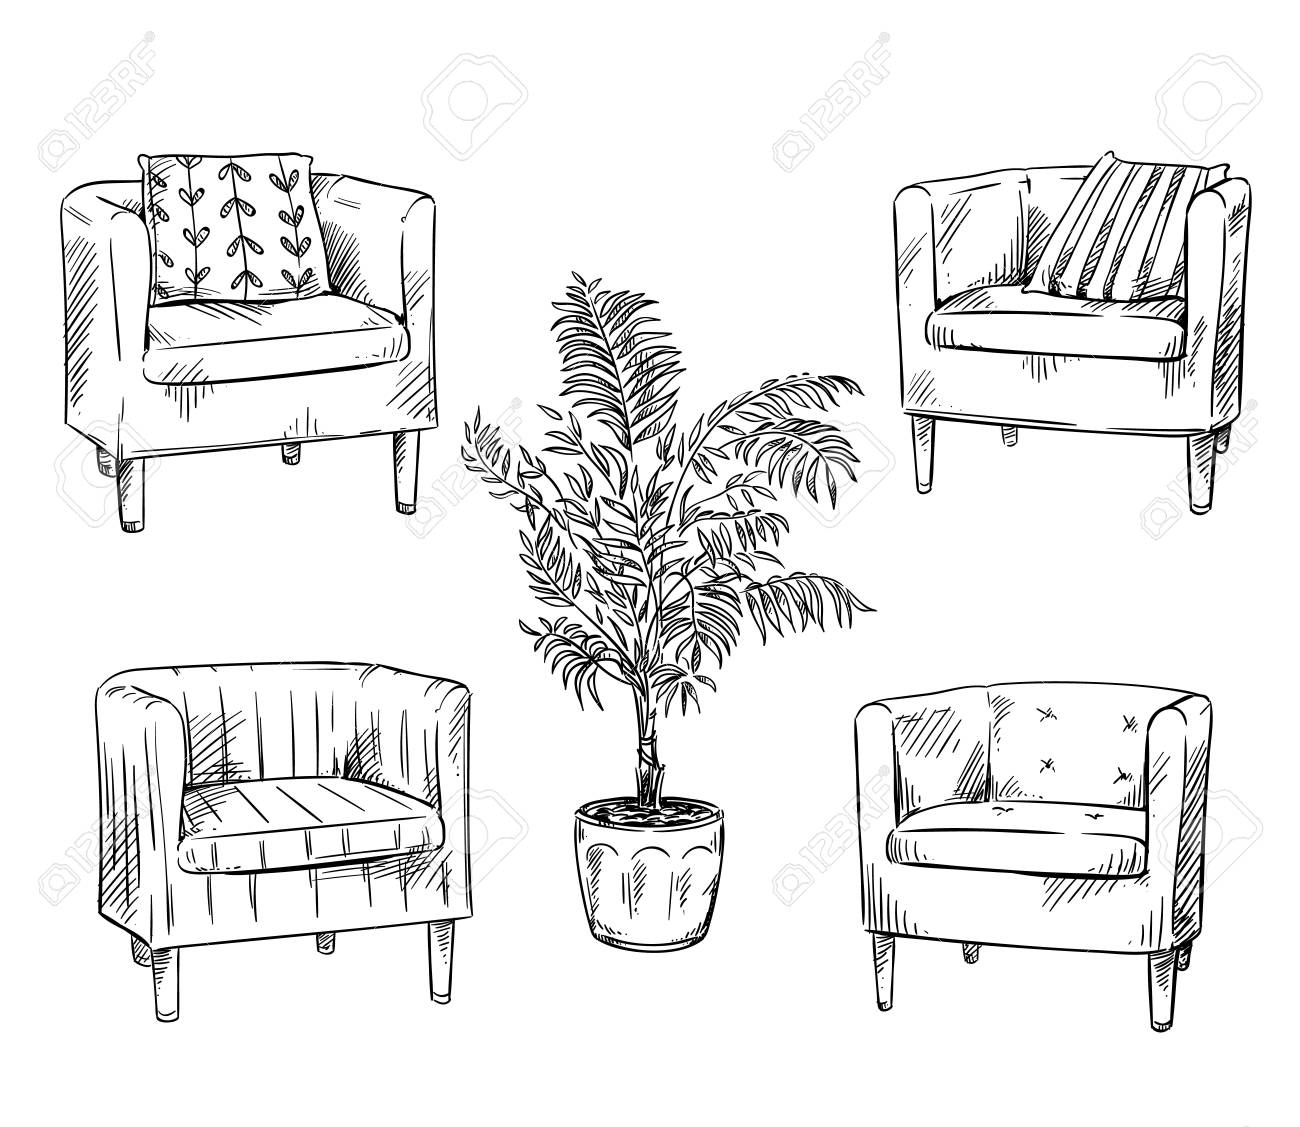 Furniture. Armchairs and flower pot - 115012108